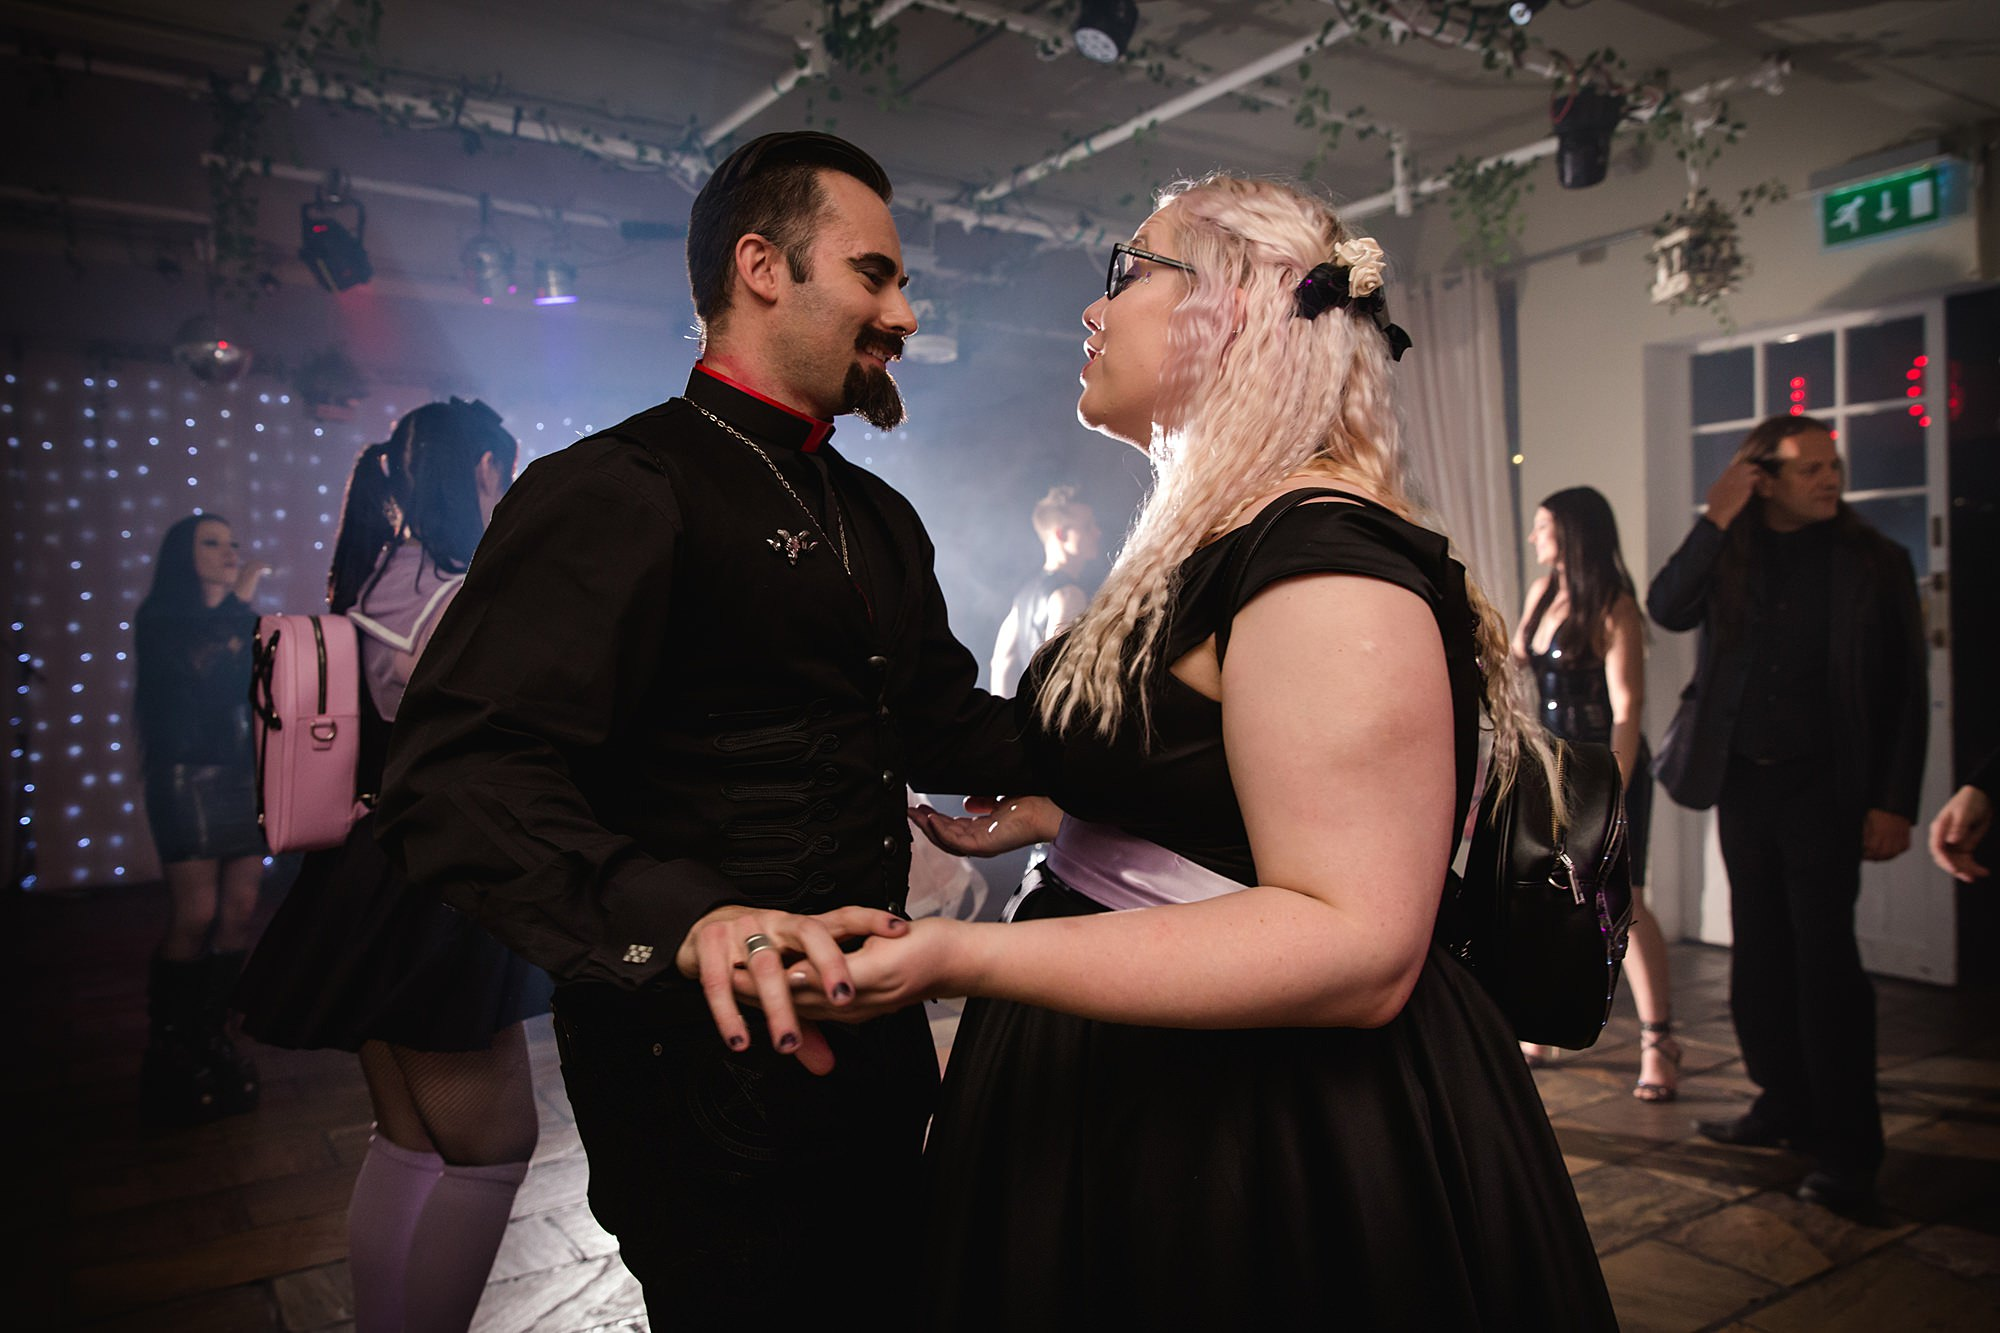 wedding guests dance together at goth wedding london